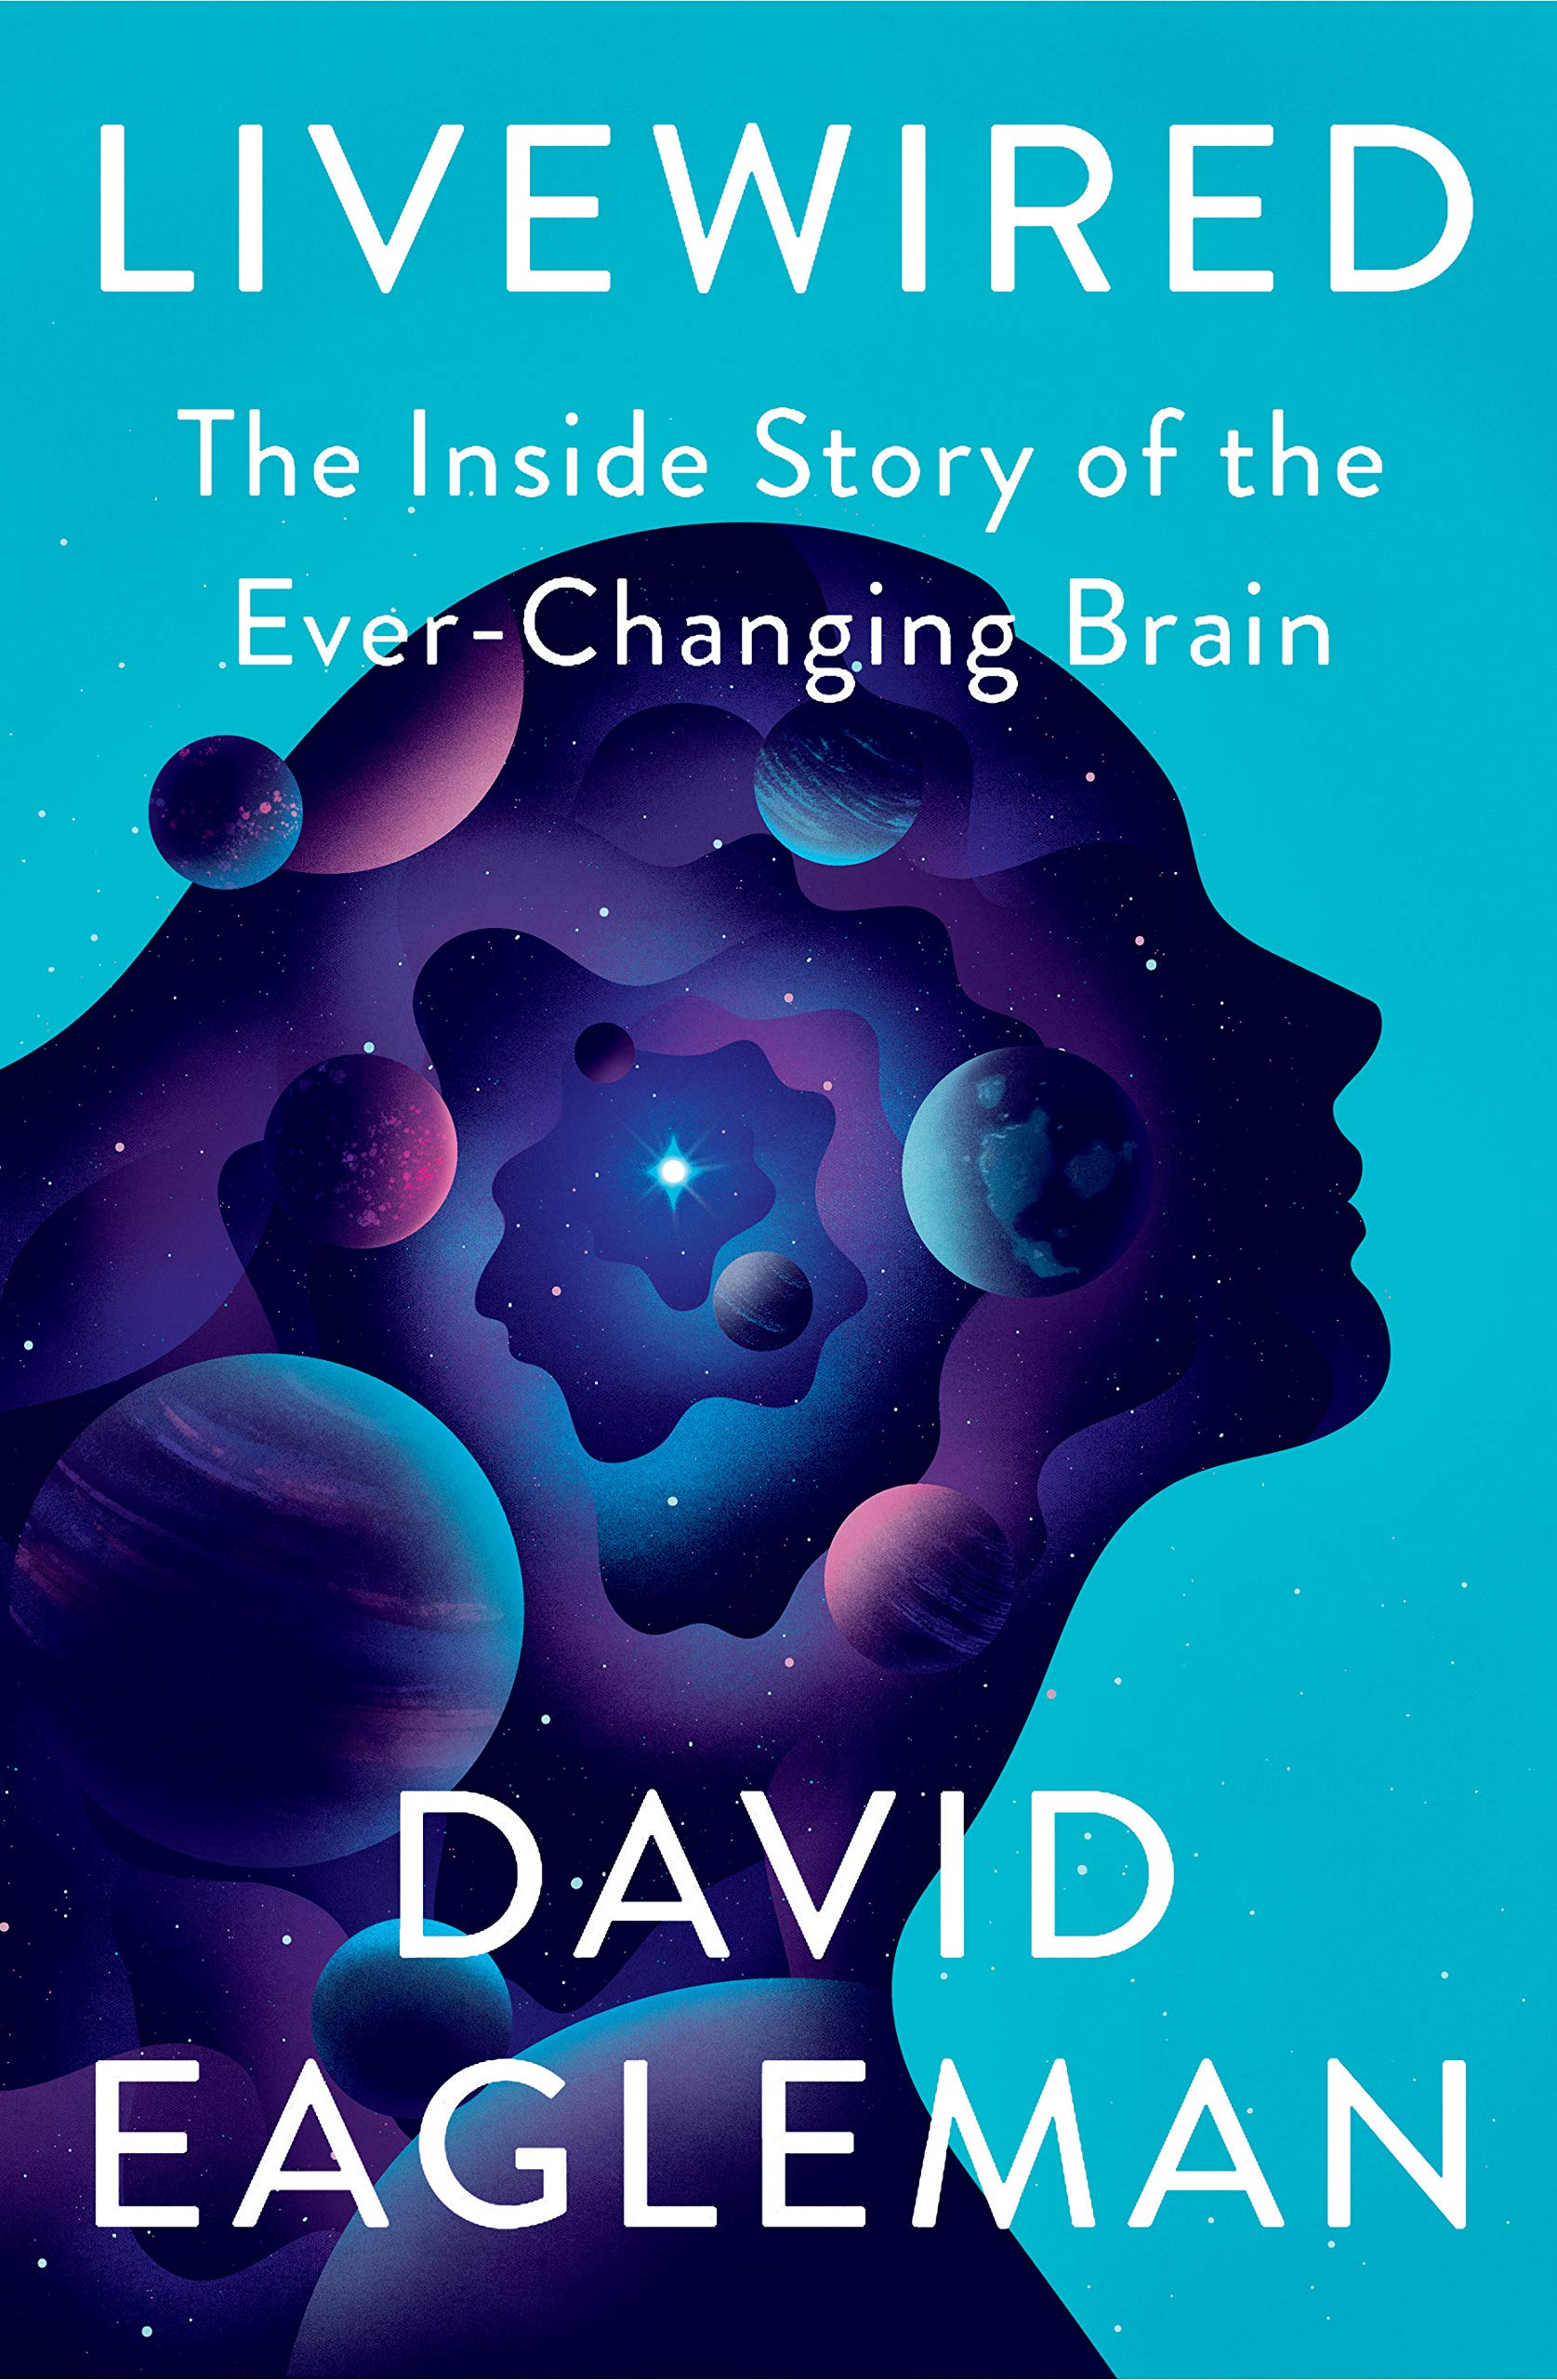 Livewired: The Inside Story of the Ever-Changing Brain: Amazon.es: Eagleman, David: Libros en idiomas extranjeros